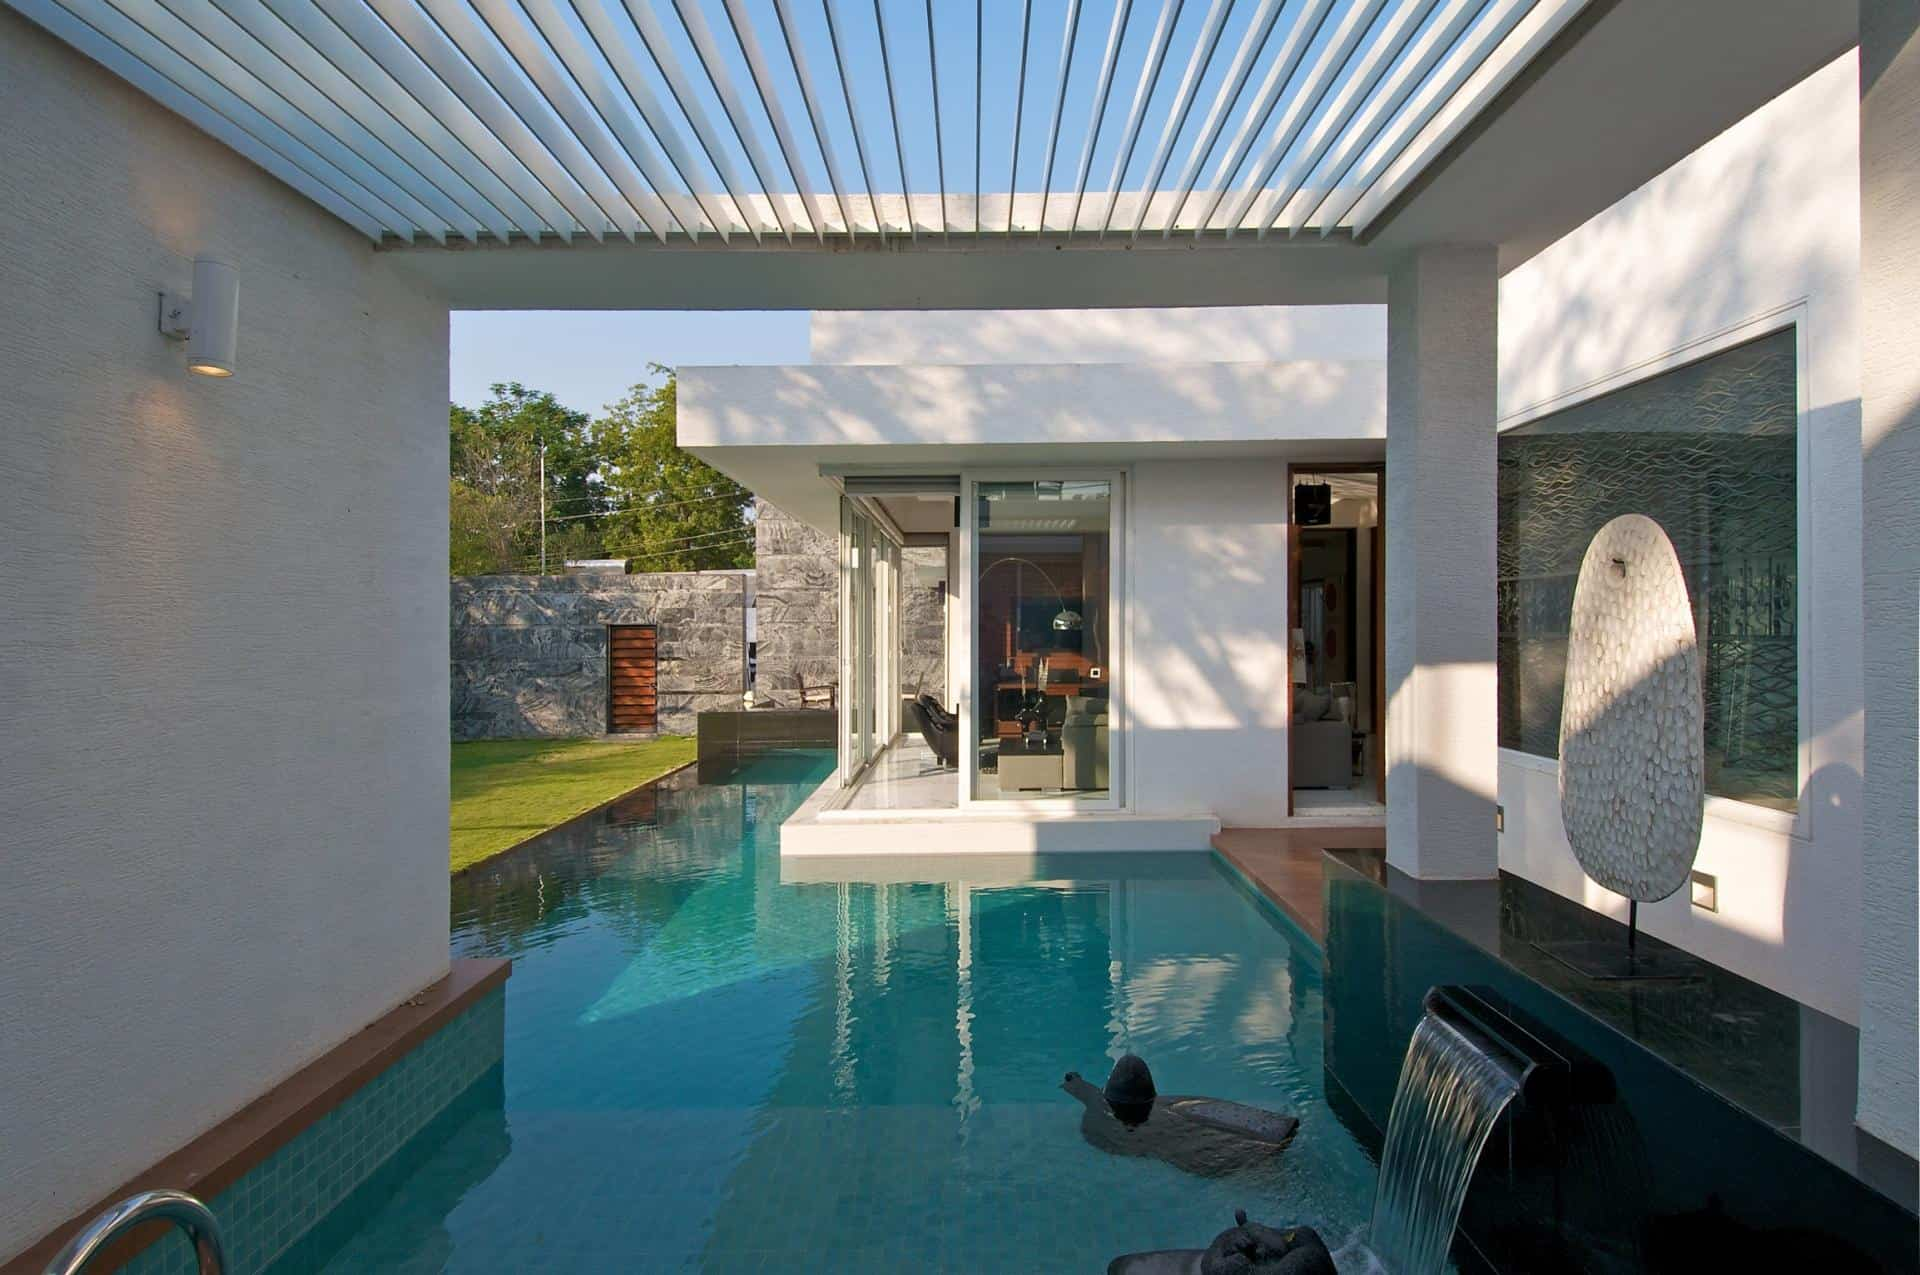 Modern minimalist bungalow design by atelier dnd for Indoor swimming pool cost to build